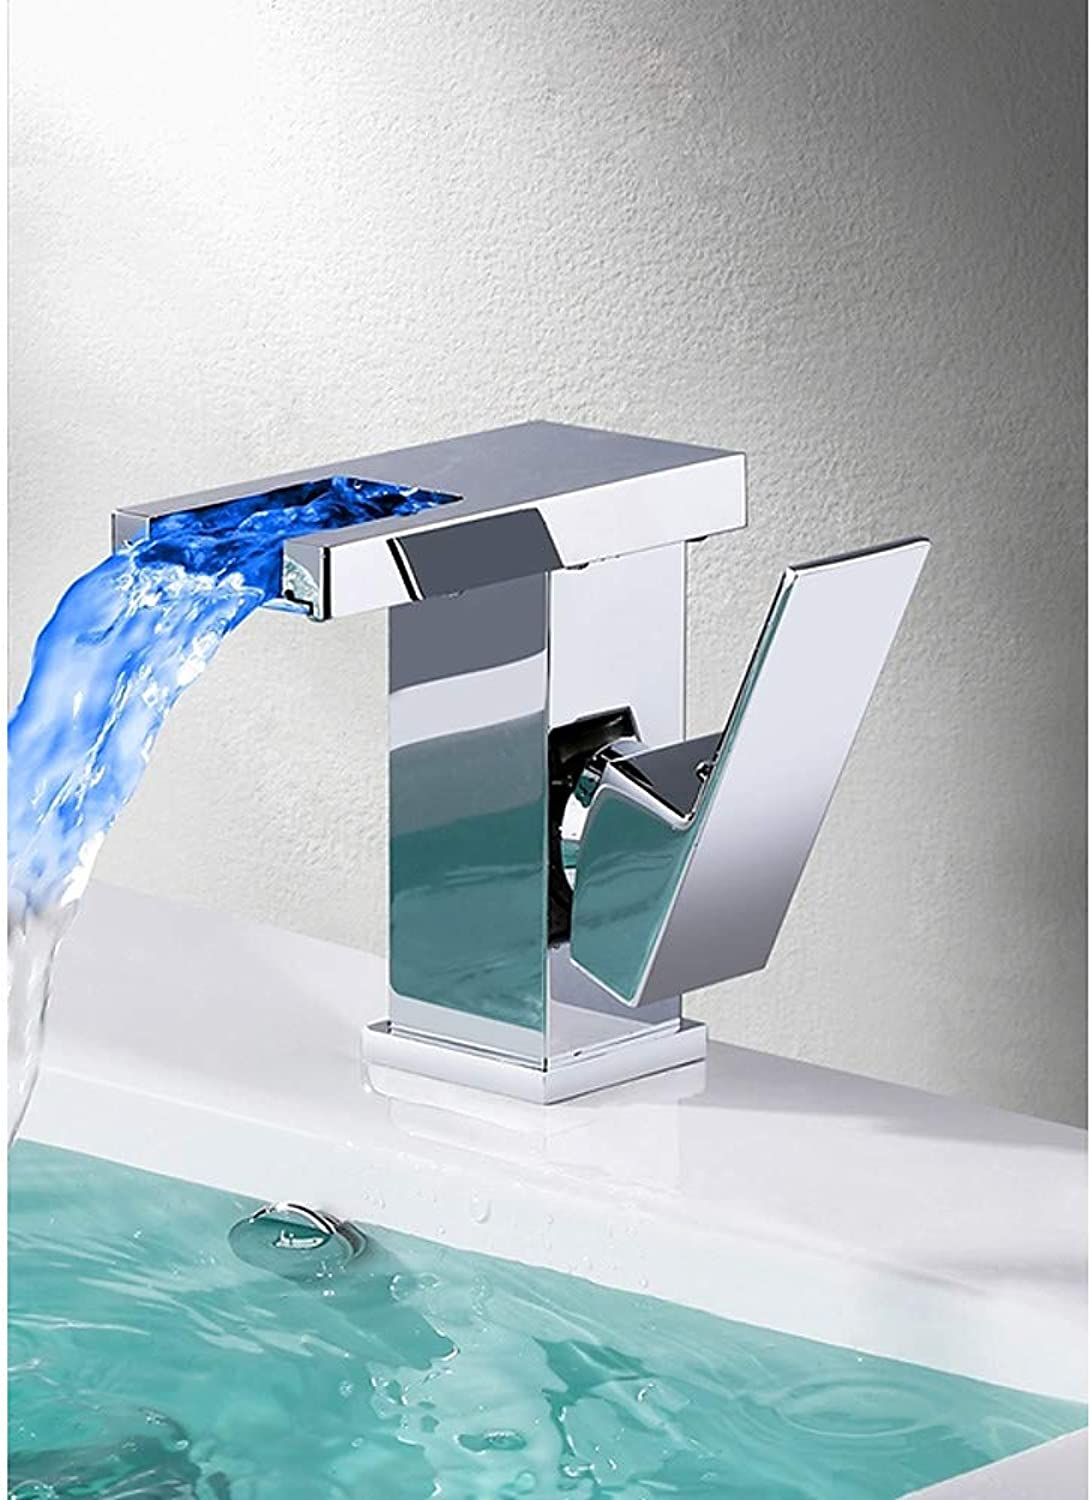 Tintin Bathroom Sink Faucet - Waterfall Chrome Centerset Single Handle One Hole LED